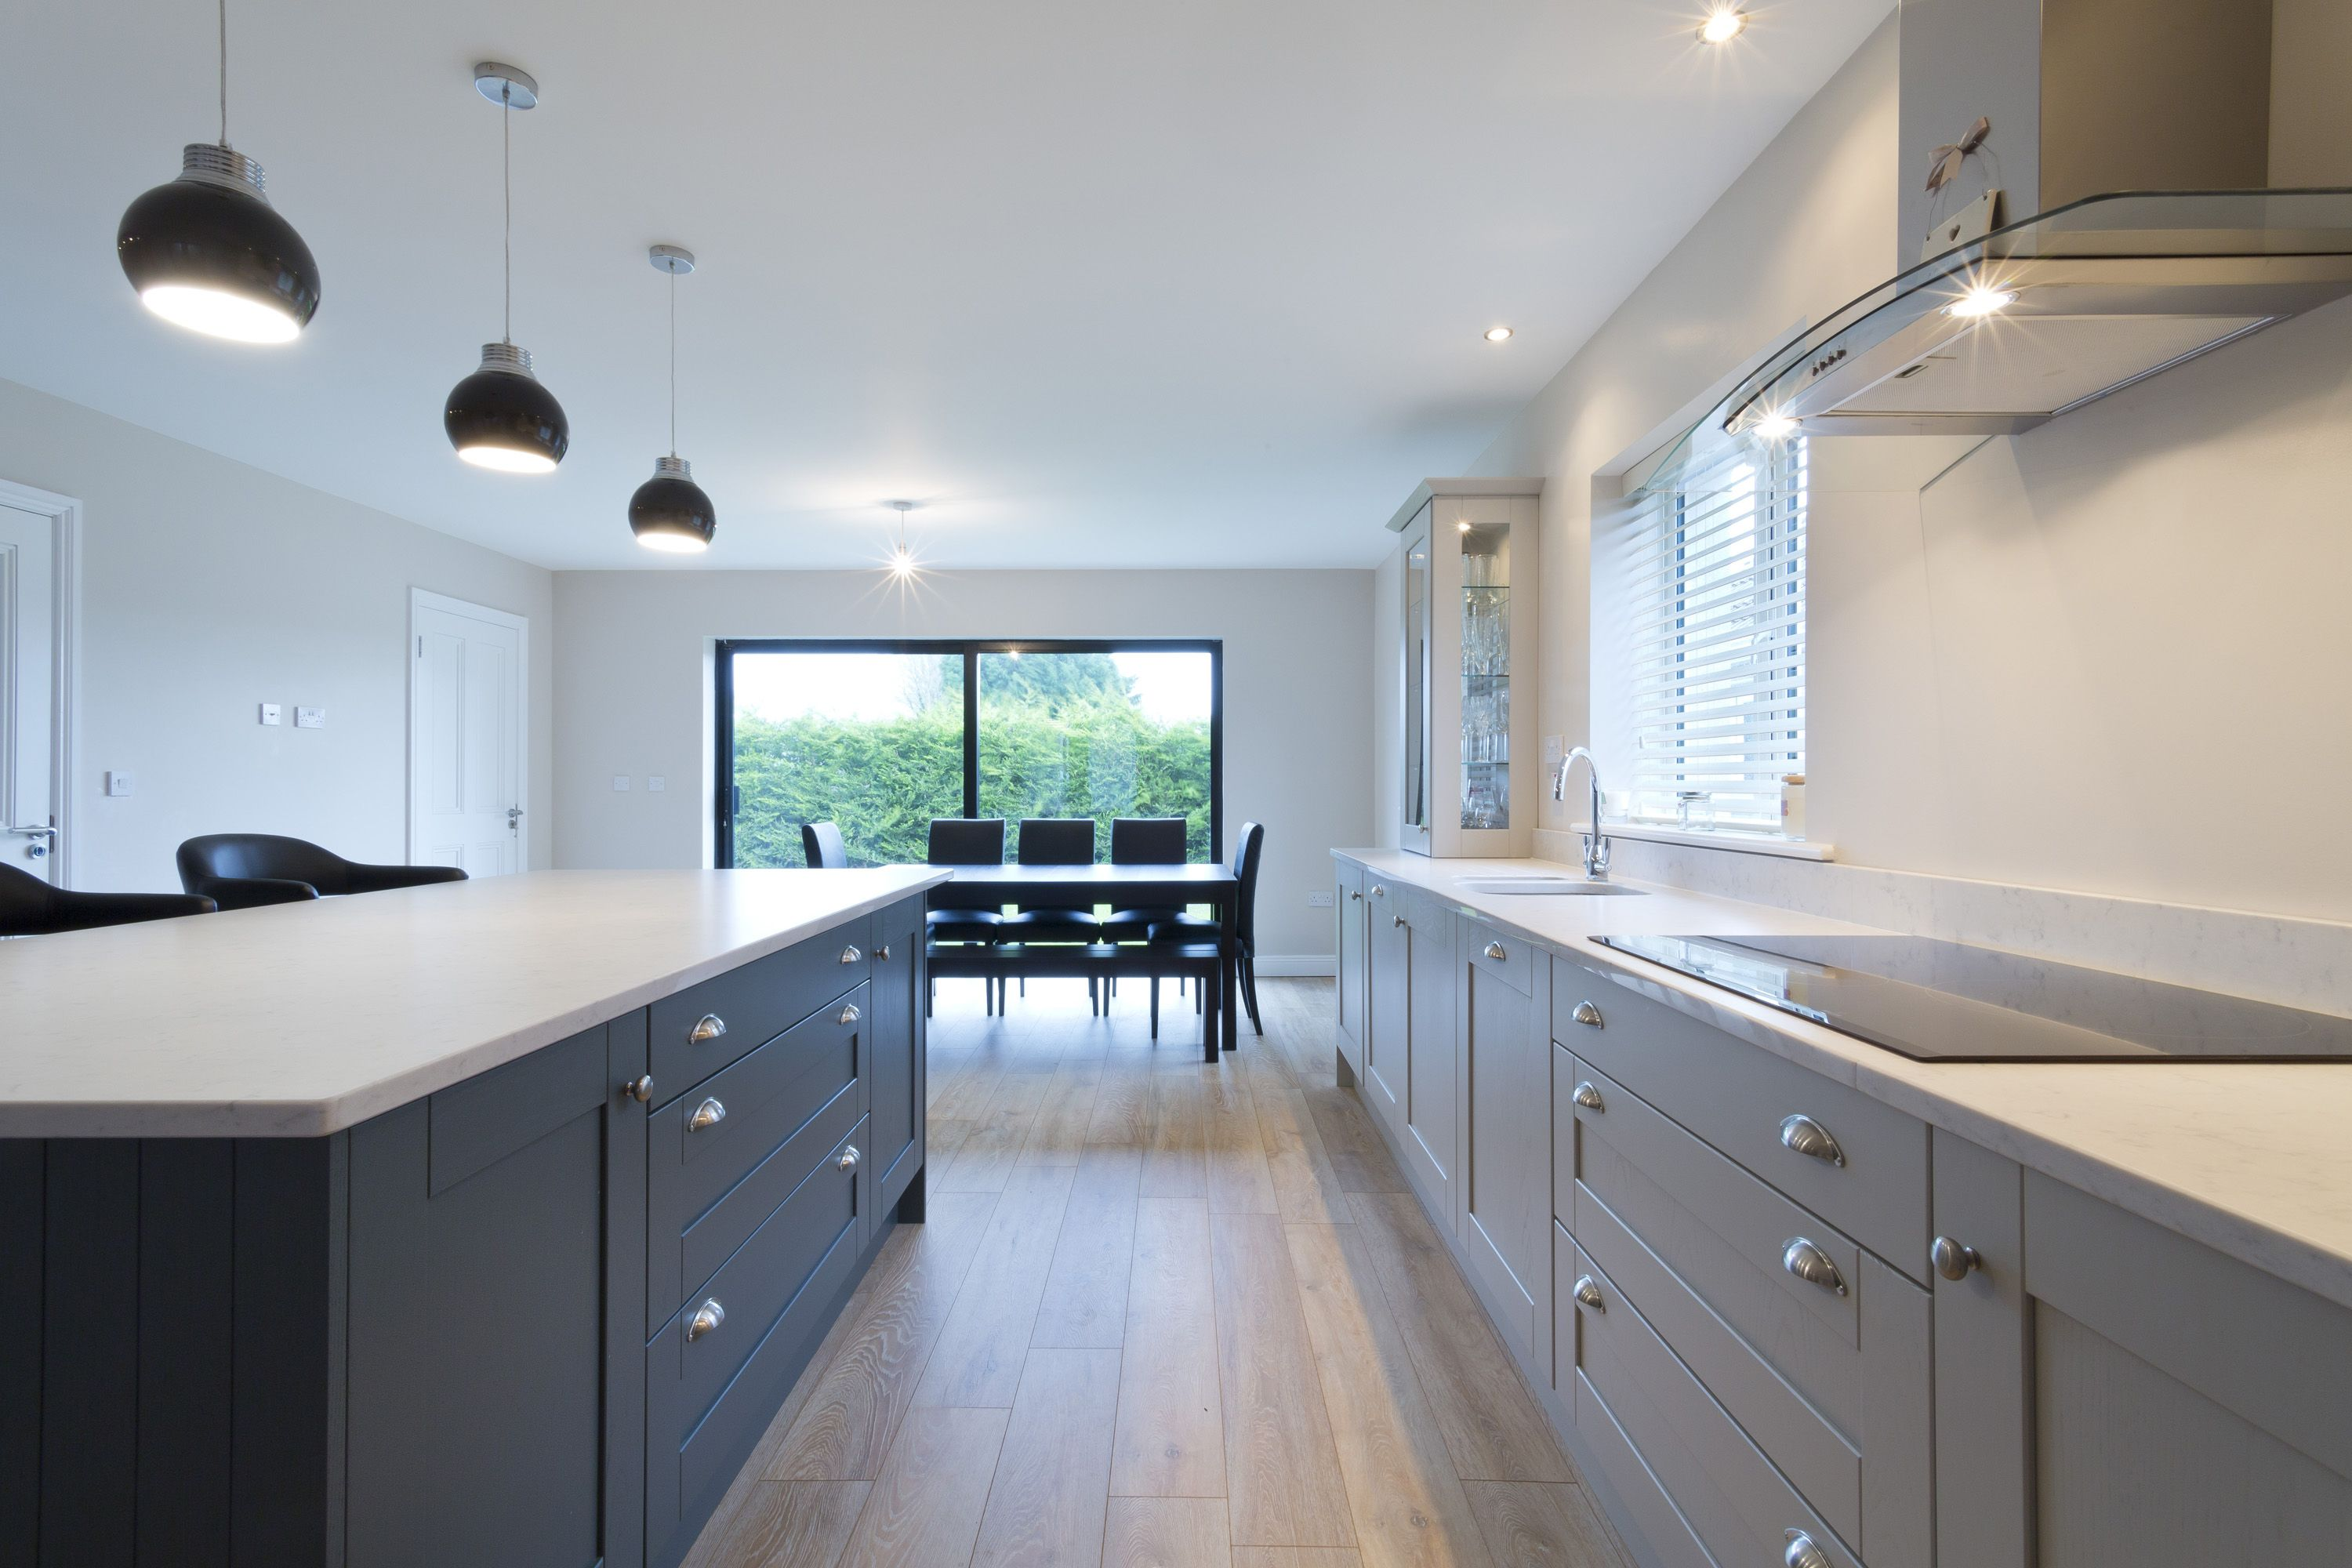 Purbeck & Railings kitchen | Kitchen | Pinterest | Kitchens, Purbeck ...